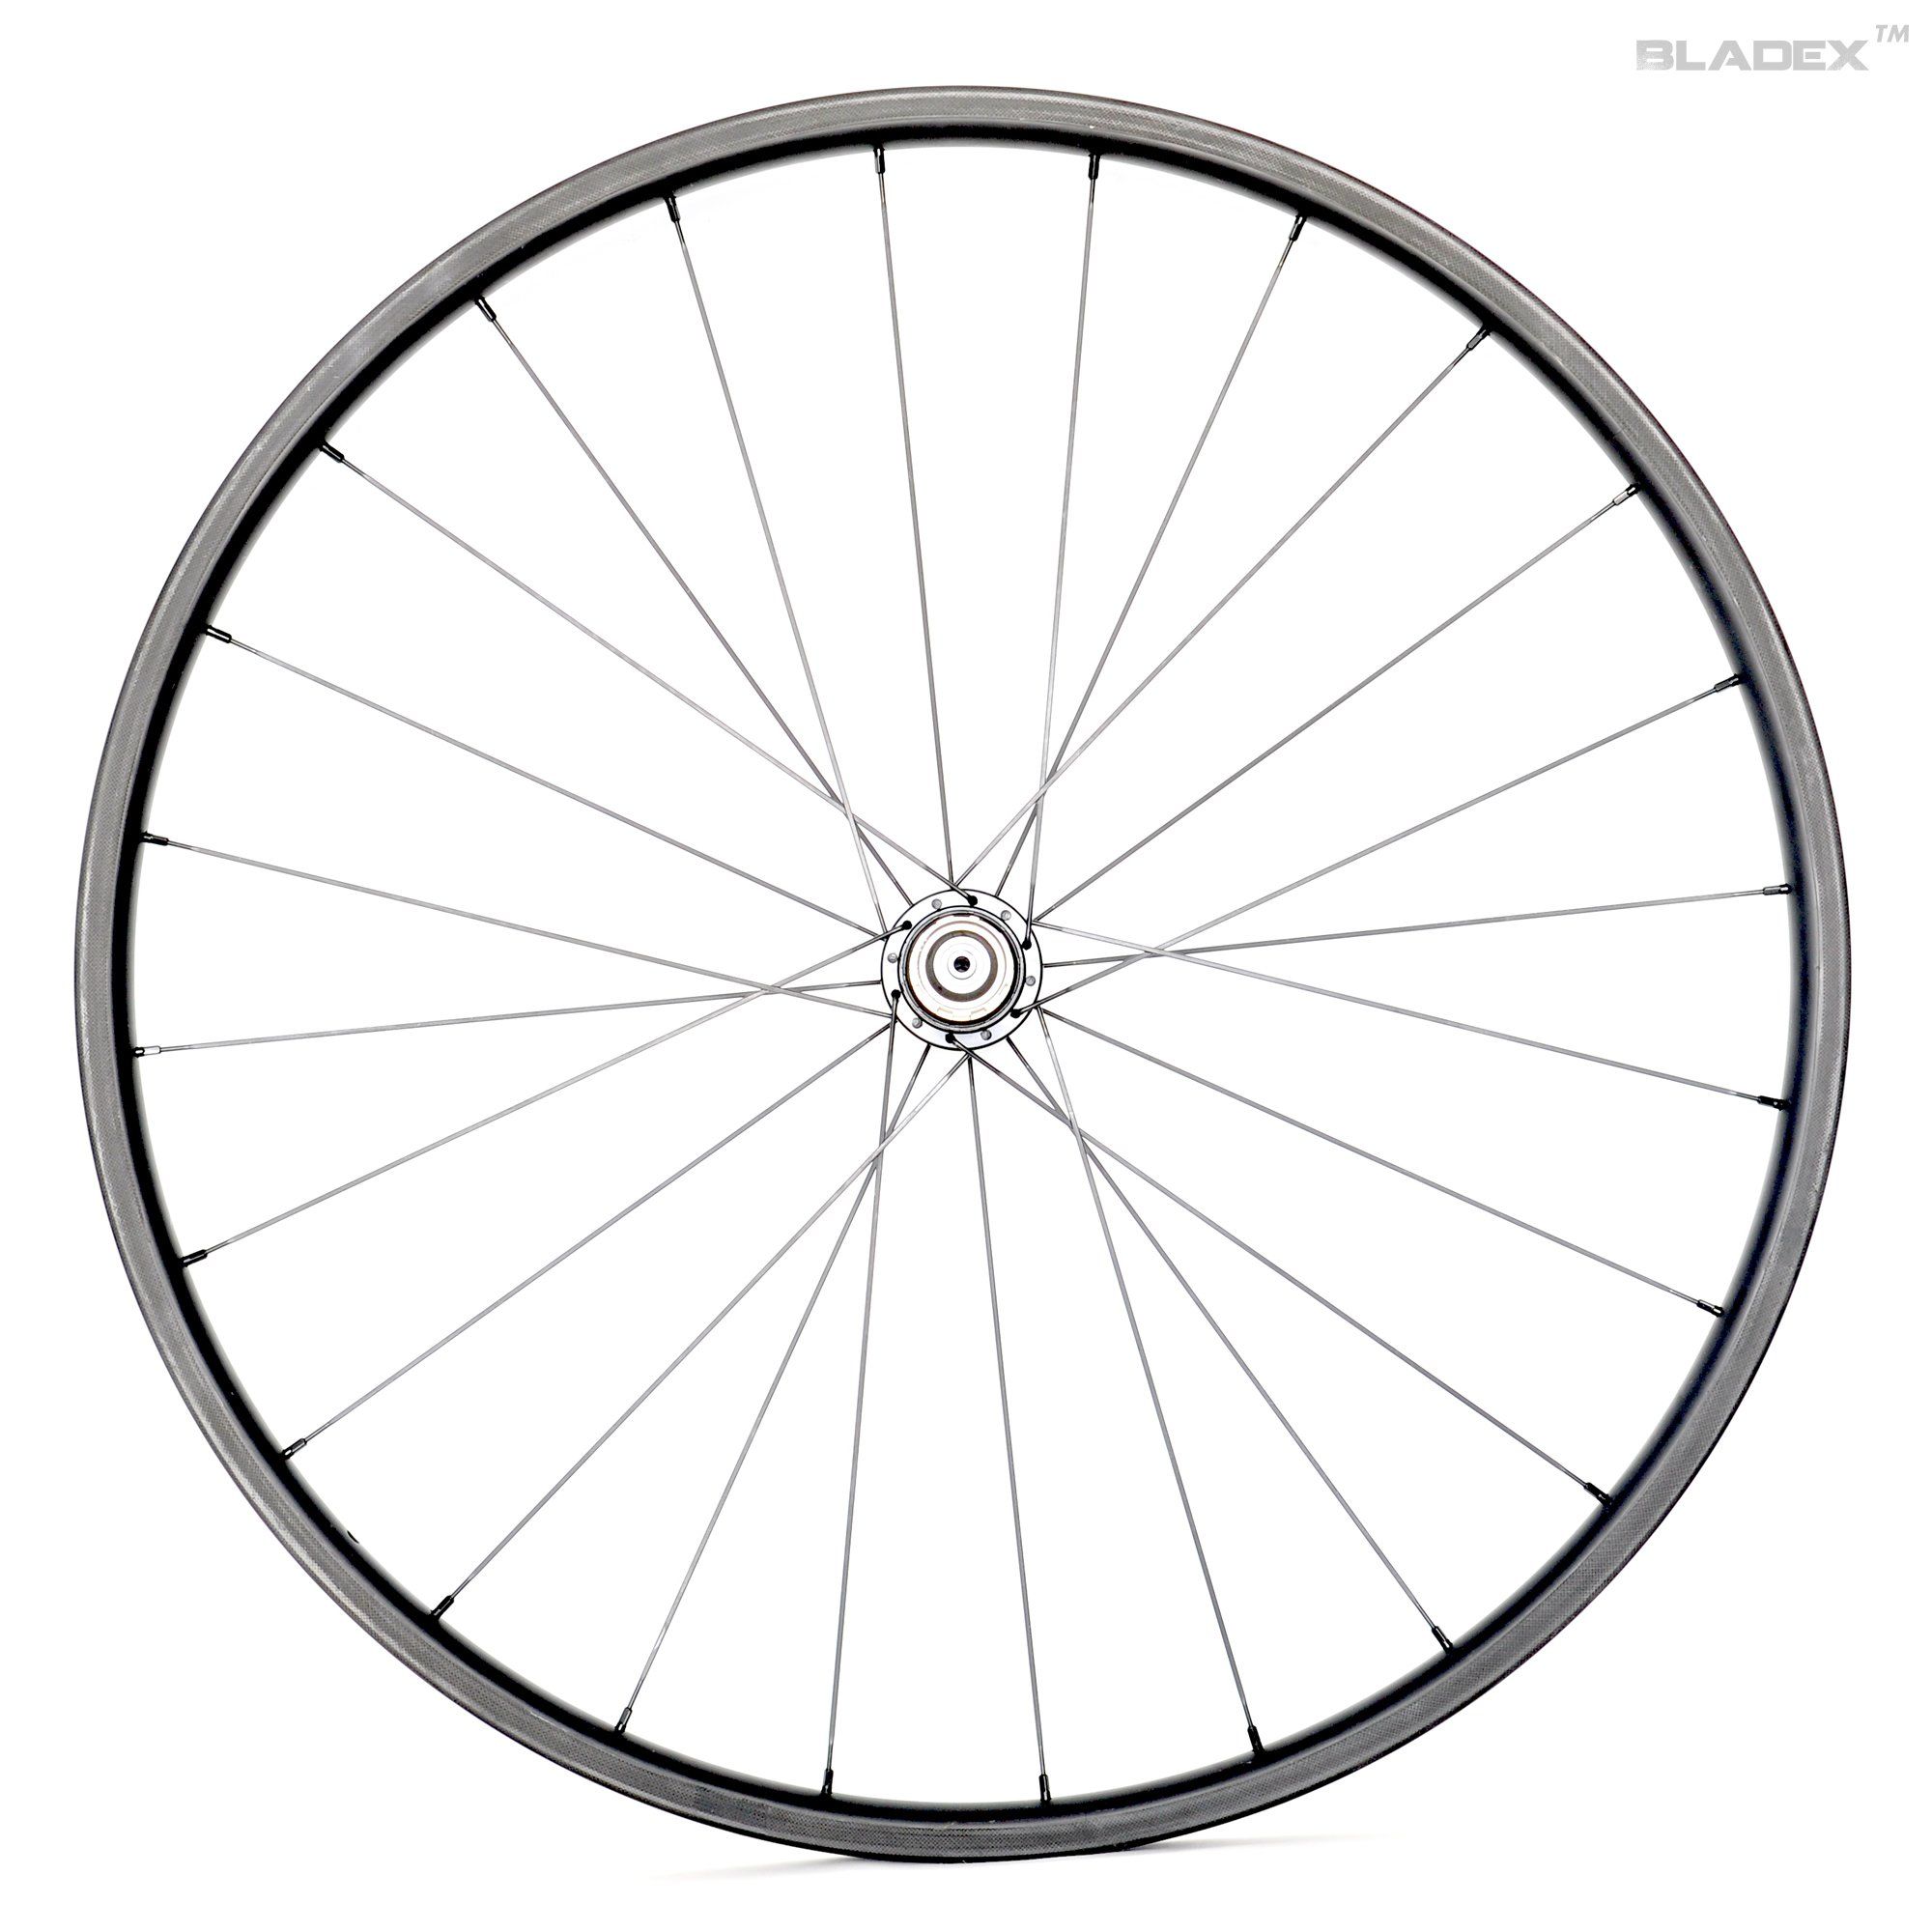 Pro Road Bike 24mm Carbon Clincher Wheels And 20mm Tubular